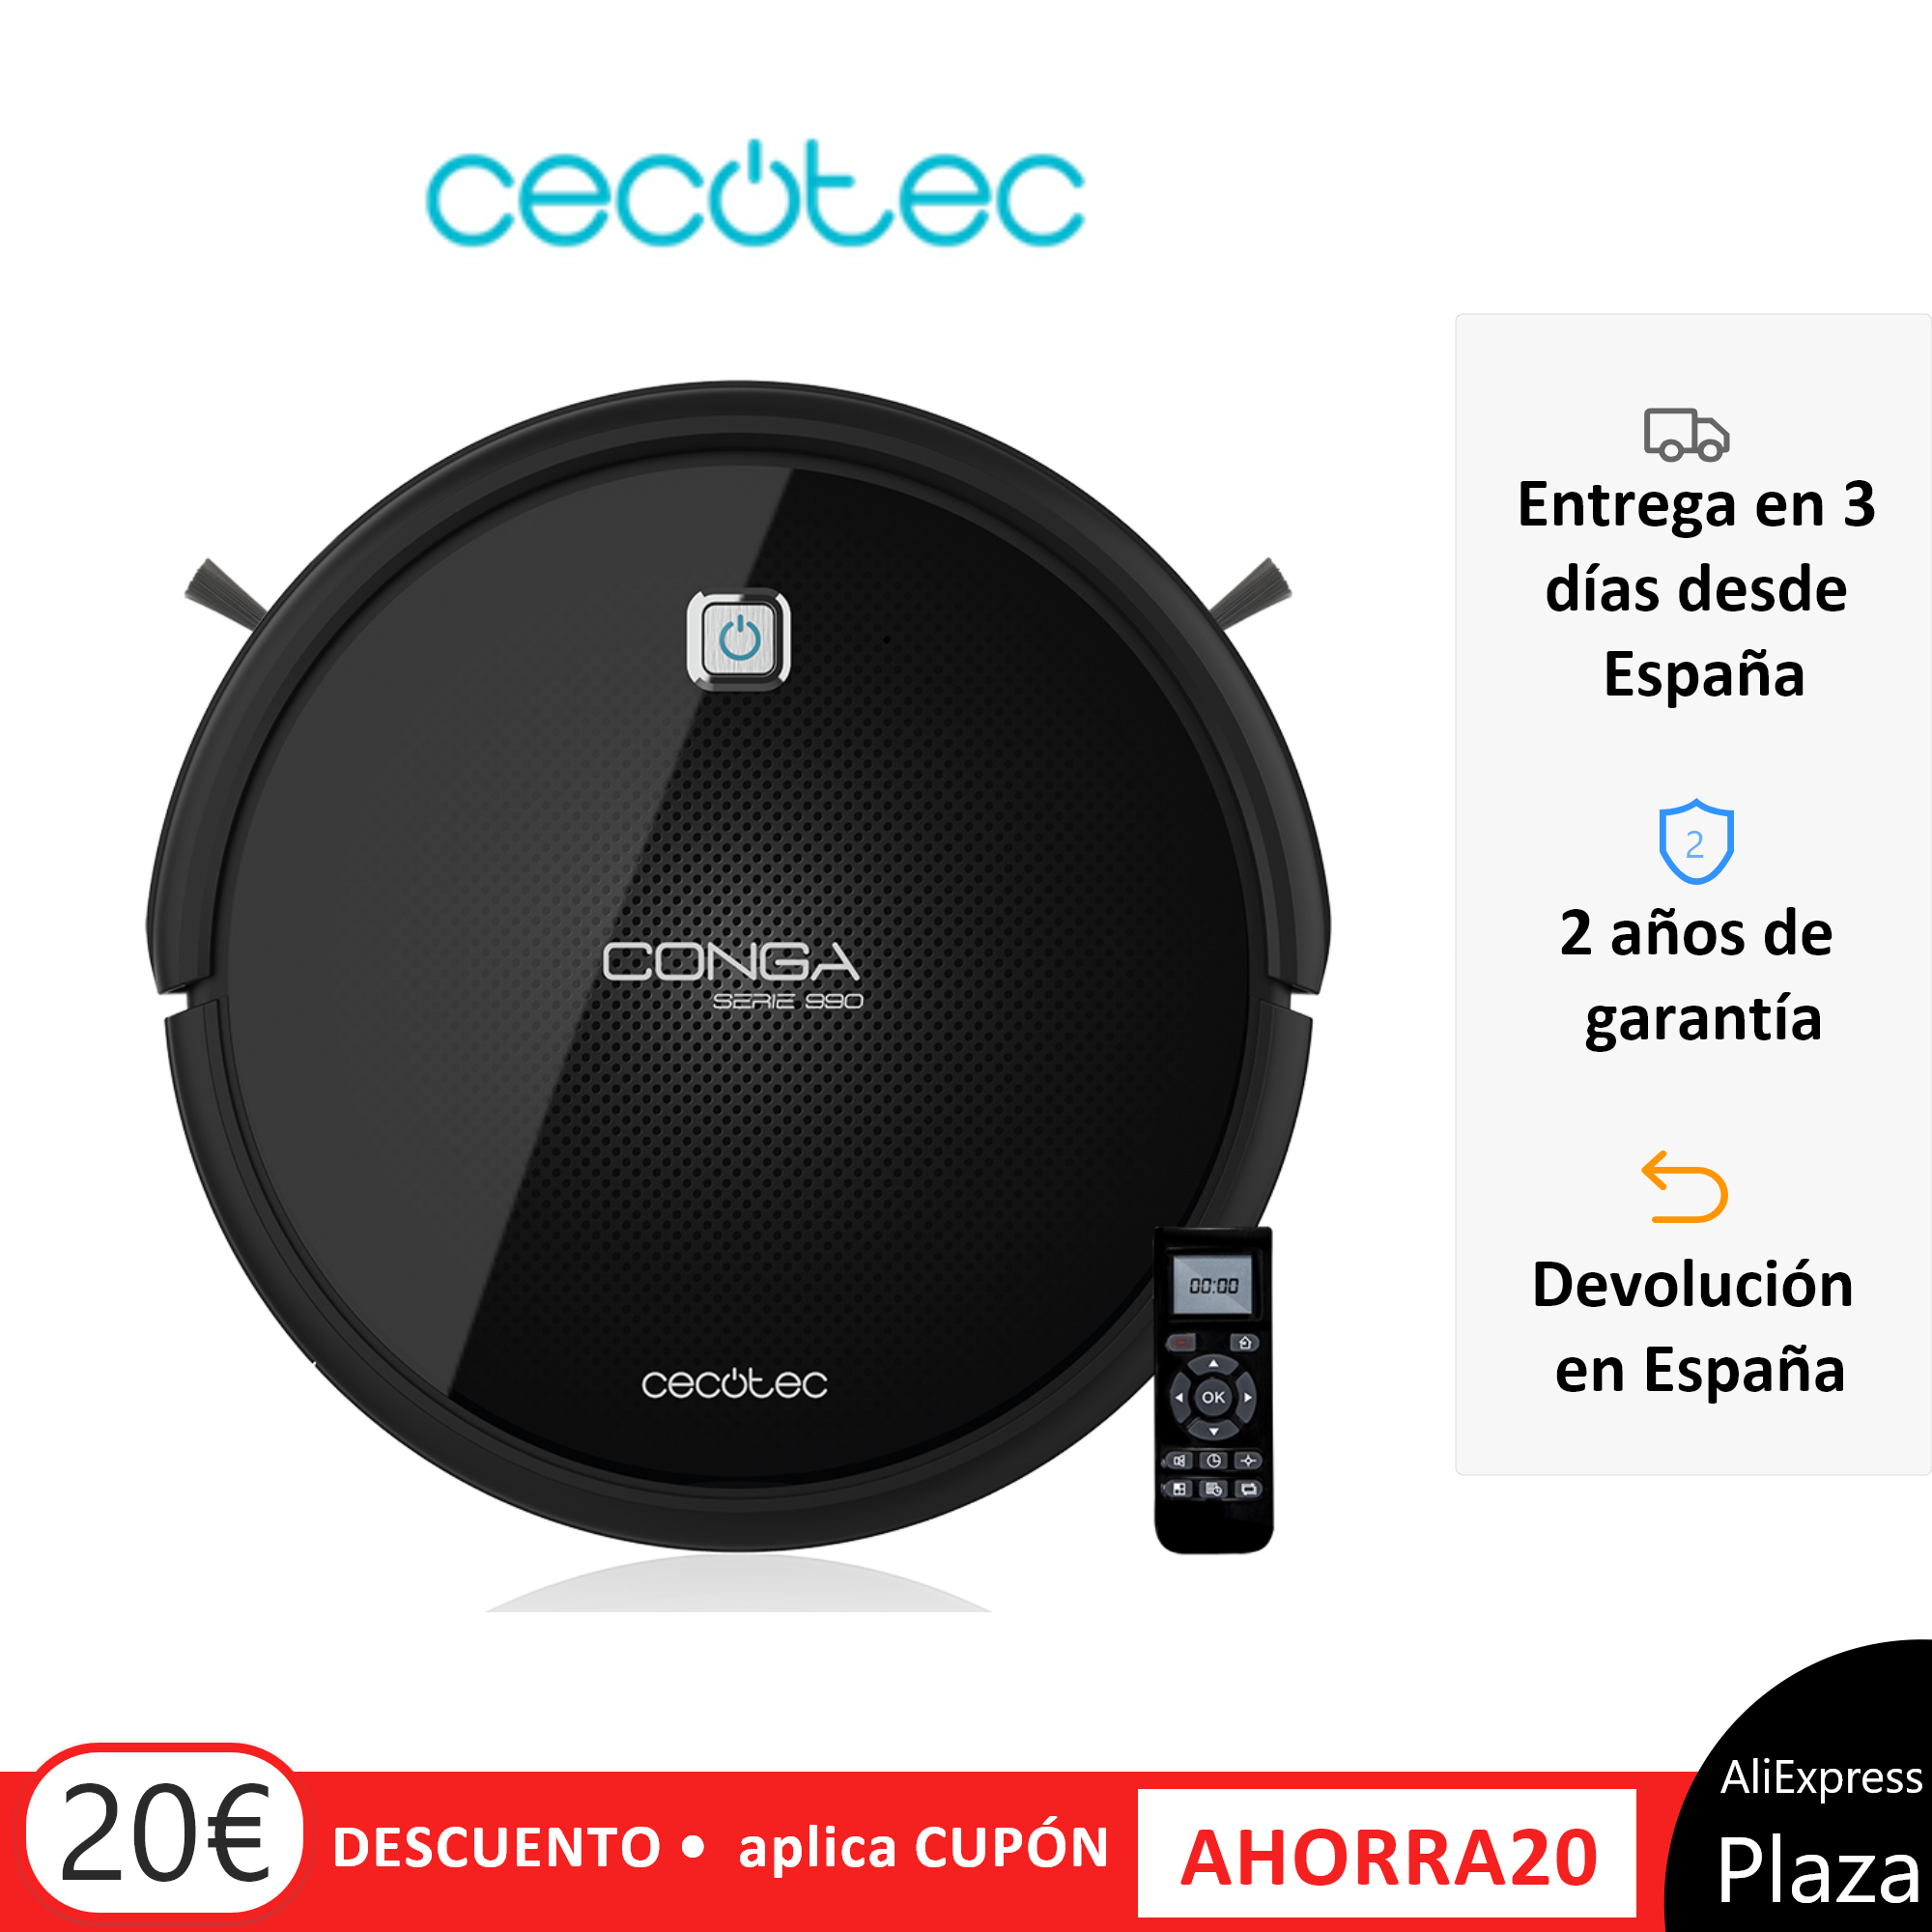 Cecotec Robot Vacuum Cleaner Conga 1090. Aspirate, Sweep, Scrub and pass the Mopa. Special Pet Brush, 160 min Autonomy, Robot Vacuum, Cordless Vacuum, Robot Cleaning image